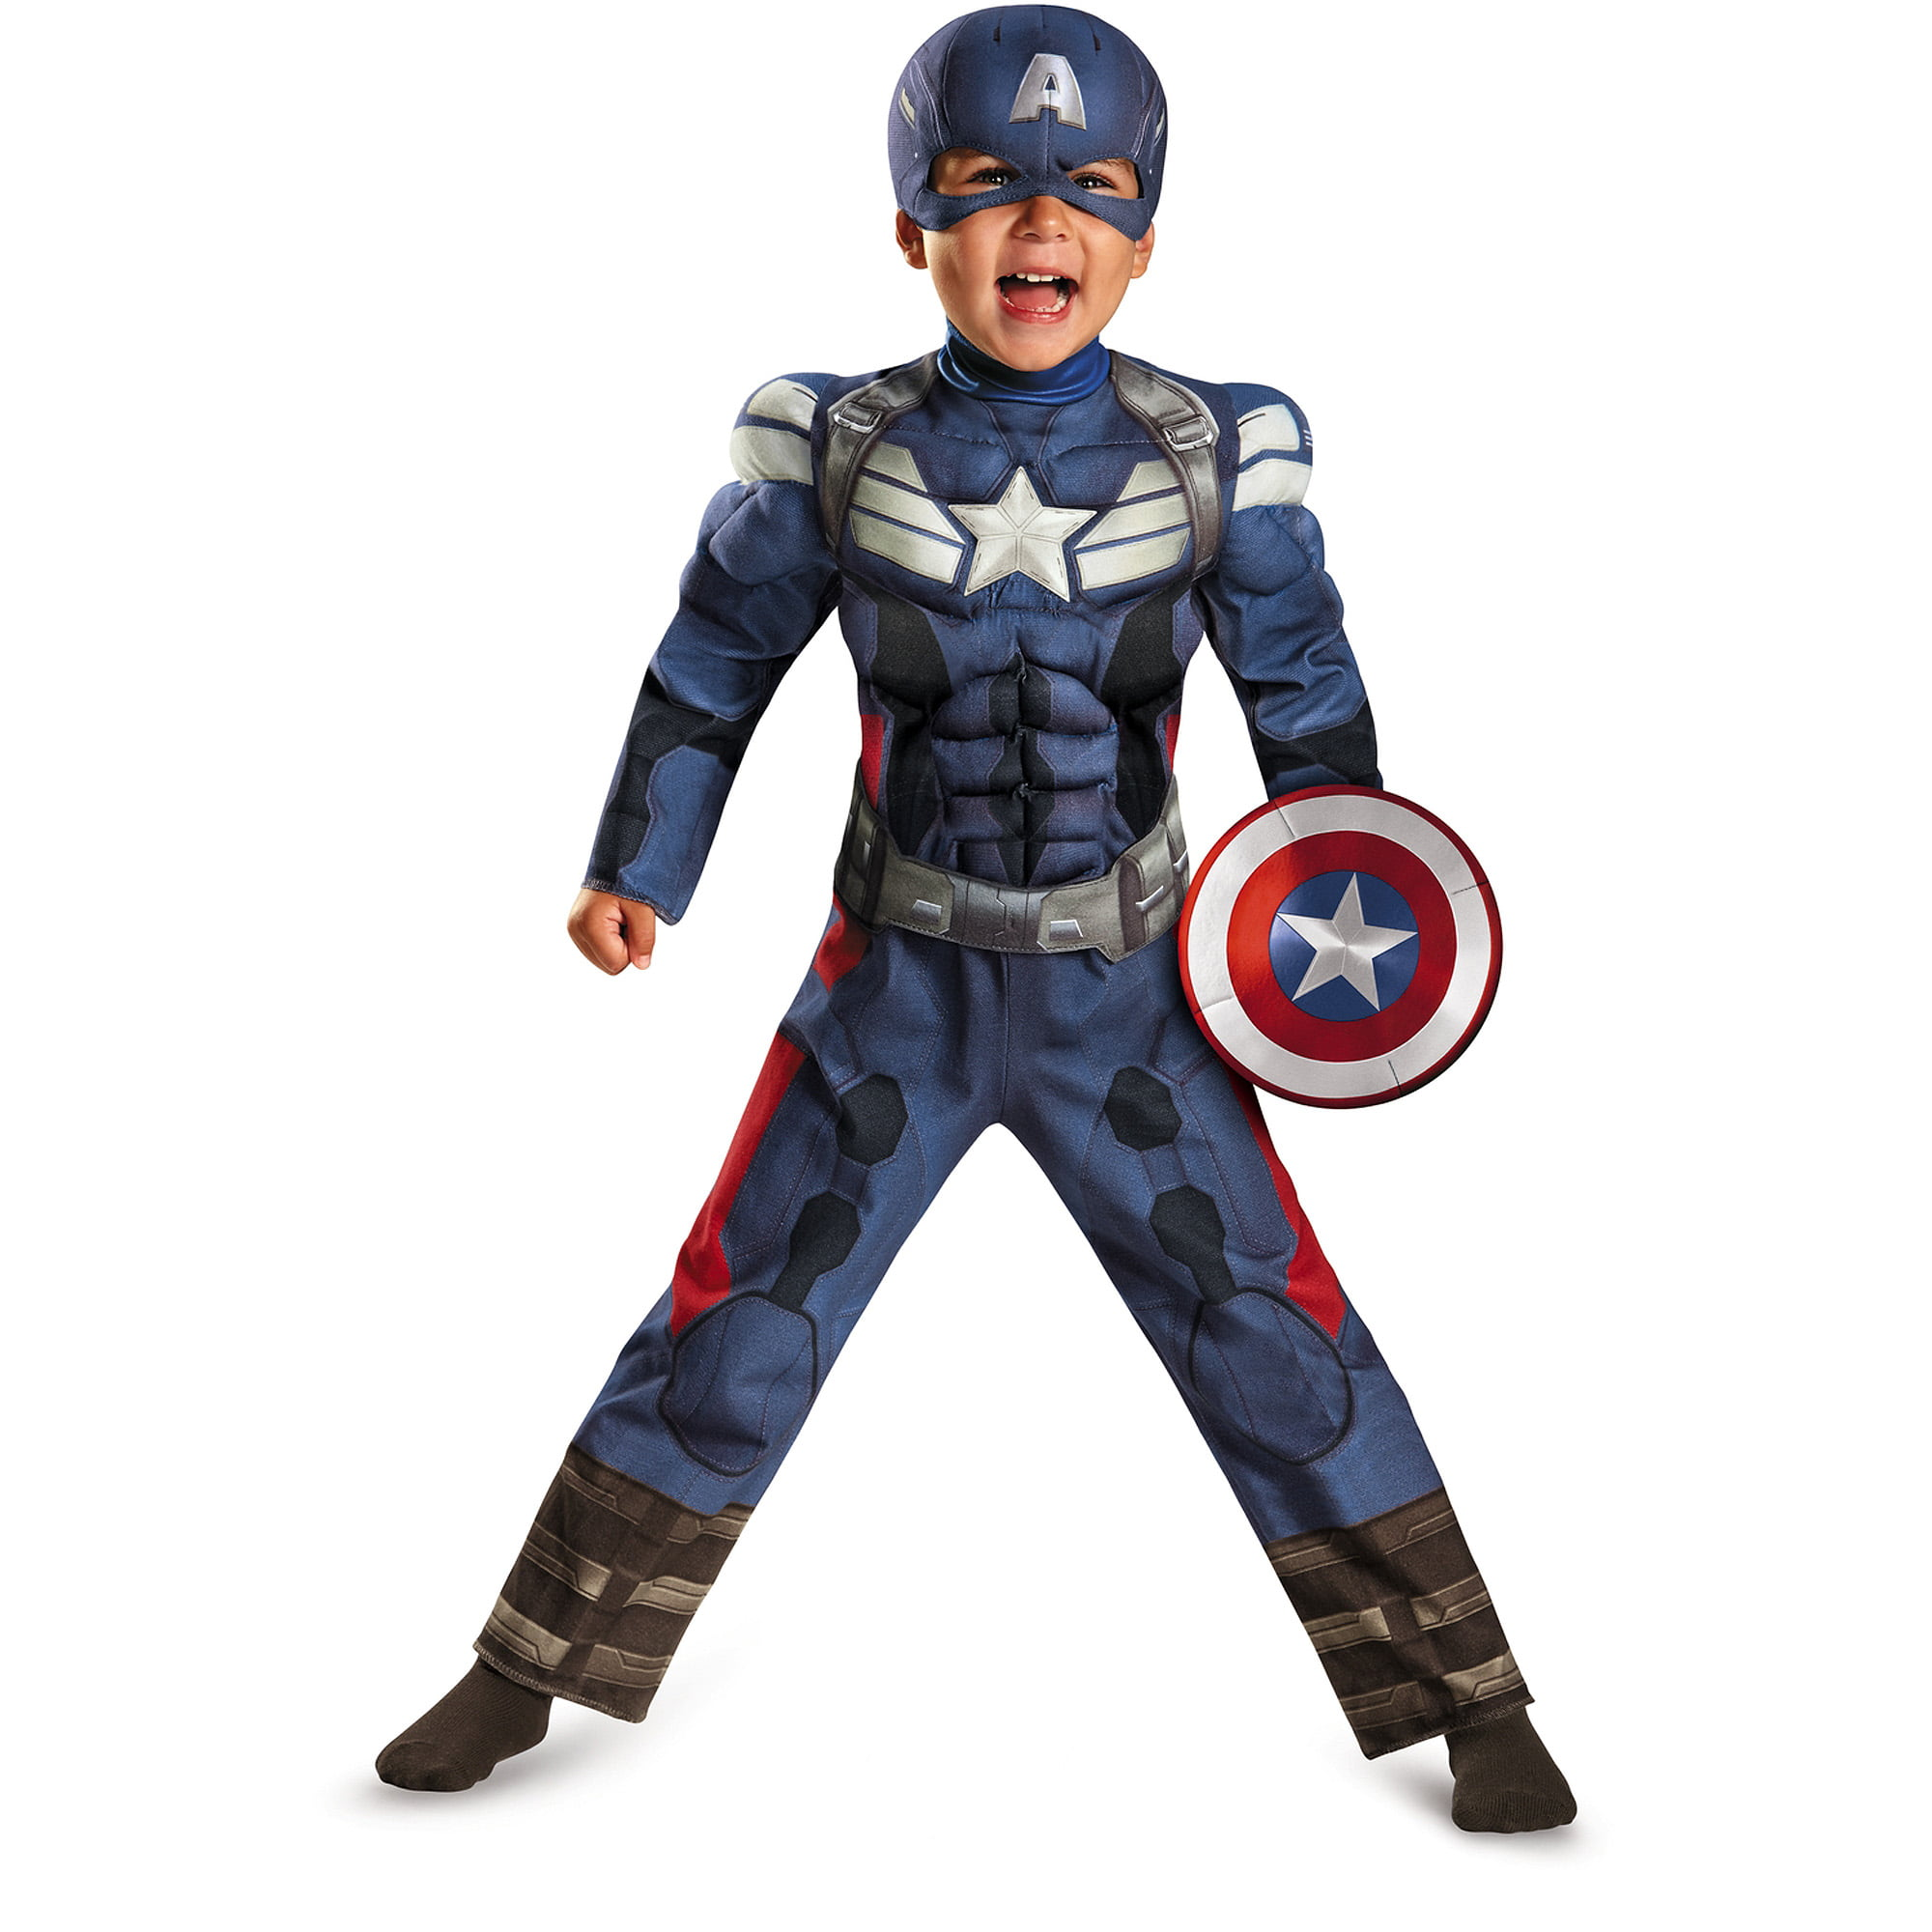 Captain America 2 Toddler Halloween Costume Walmart Com Walmart Com Buy captain marvel halloween costumes, cheap captain marvel cosplay costumes low price, just choose your favorite superhero captain marvel product name: captain america 2 toddler halloween costume